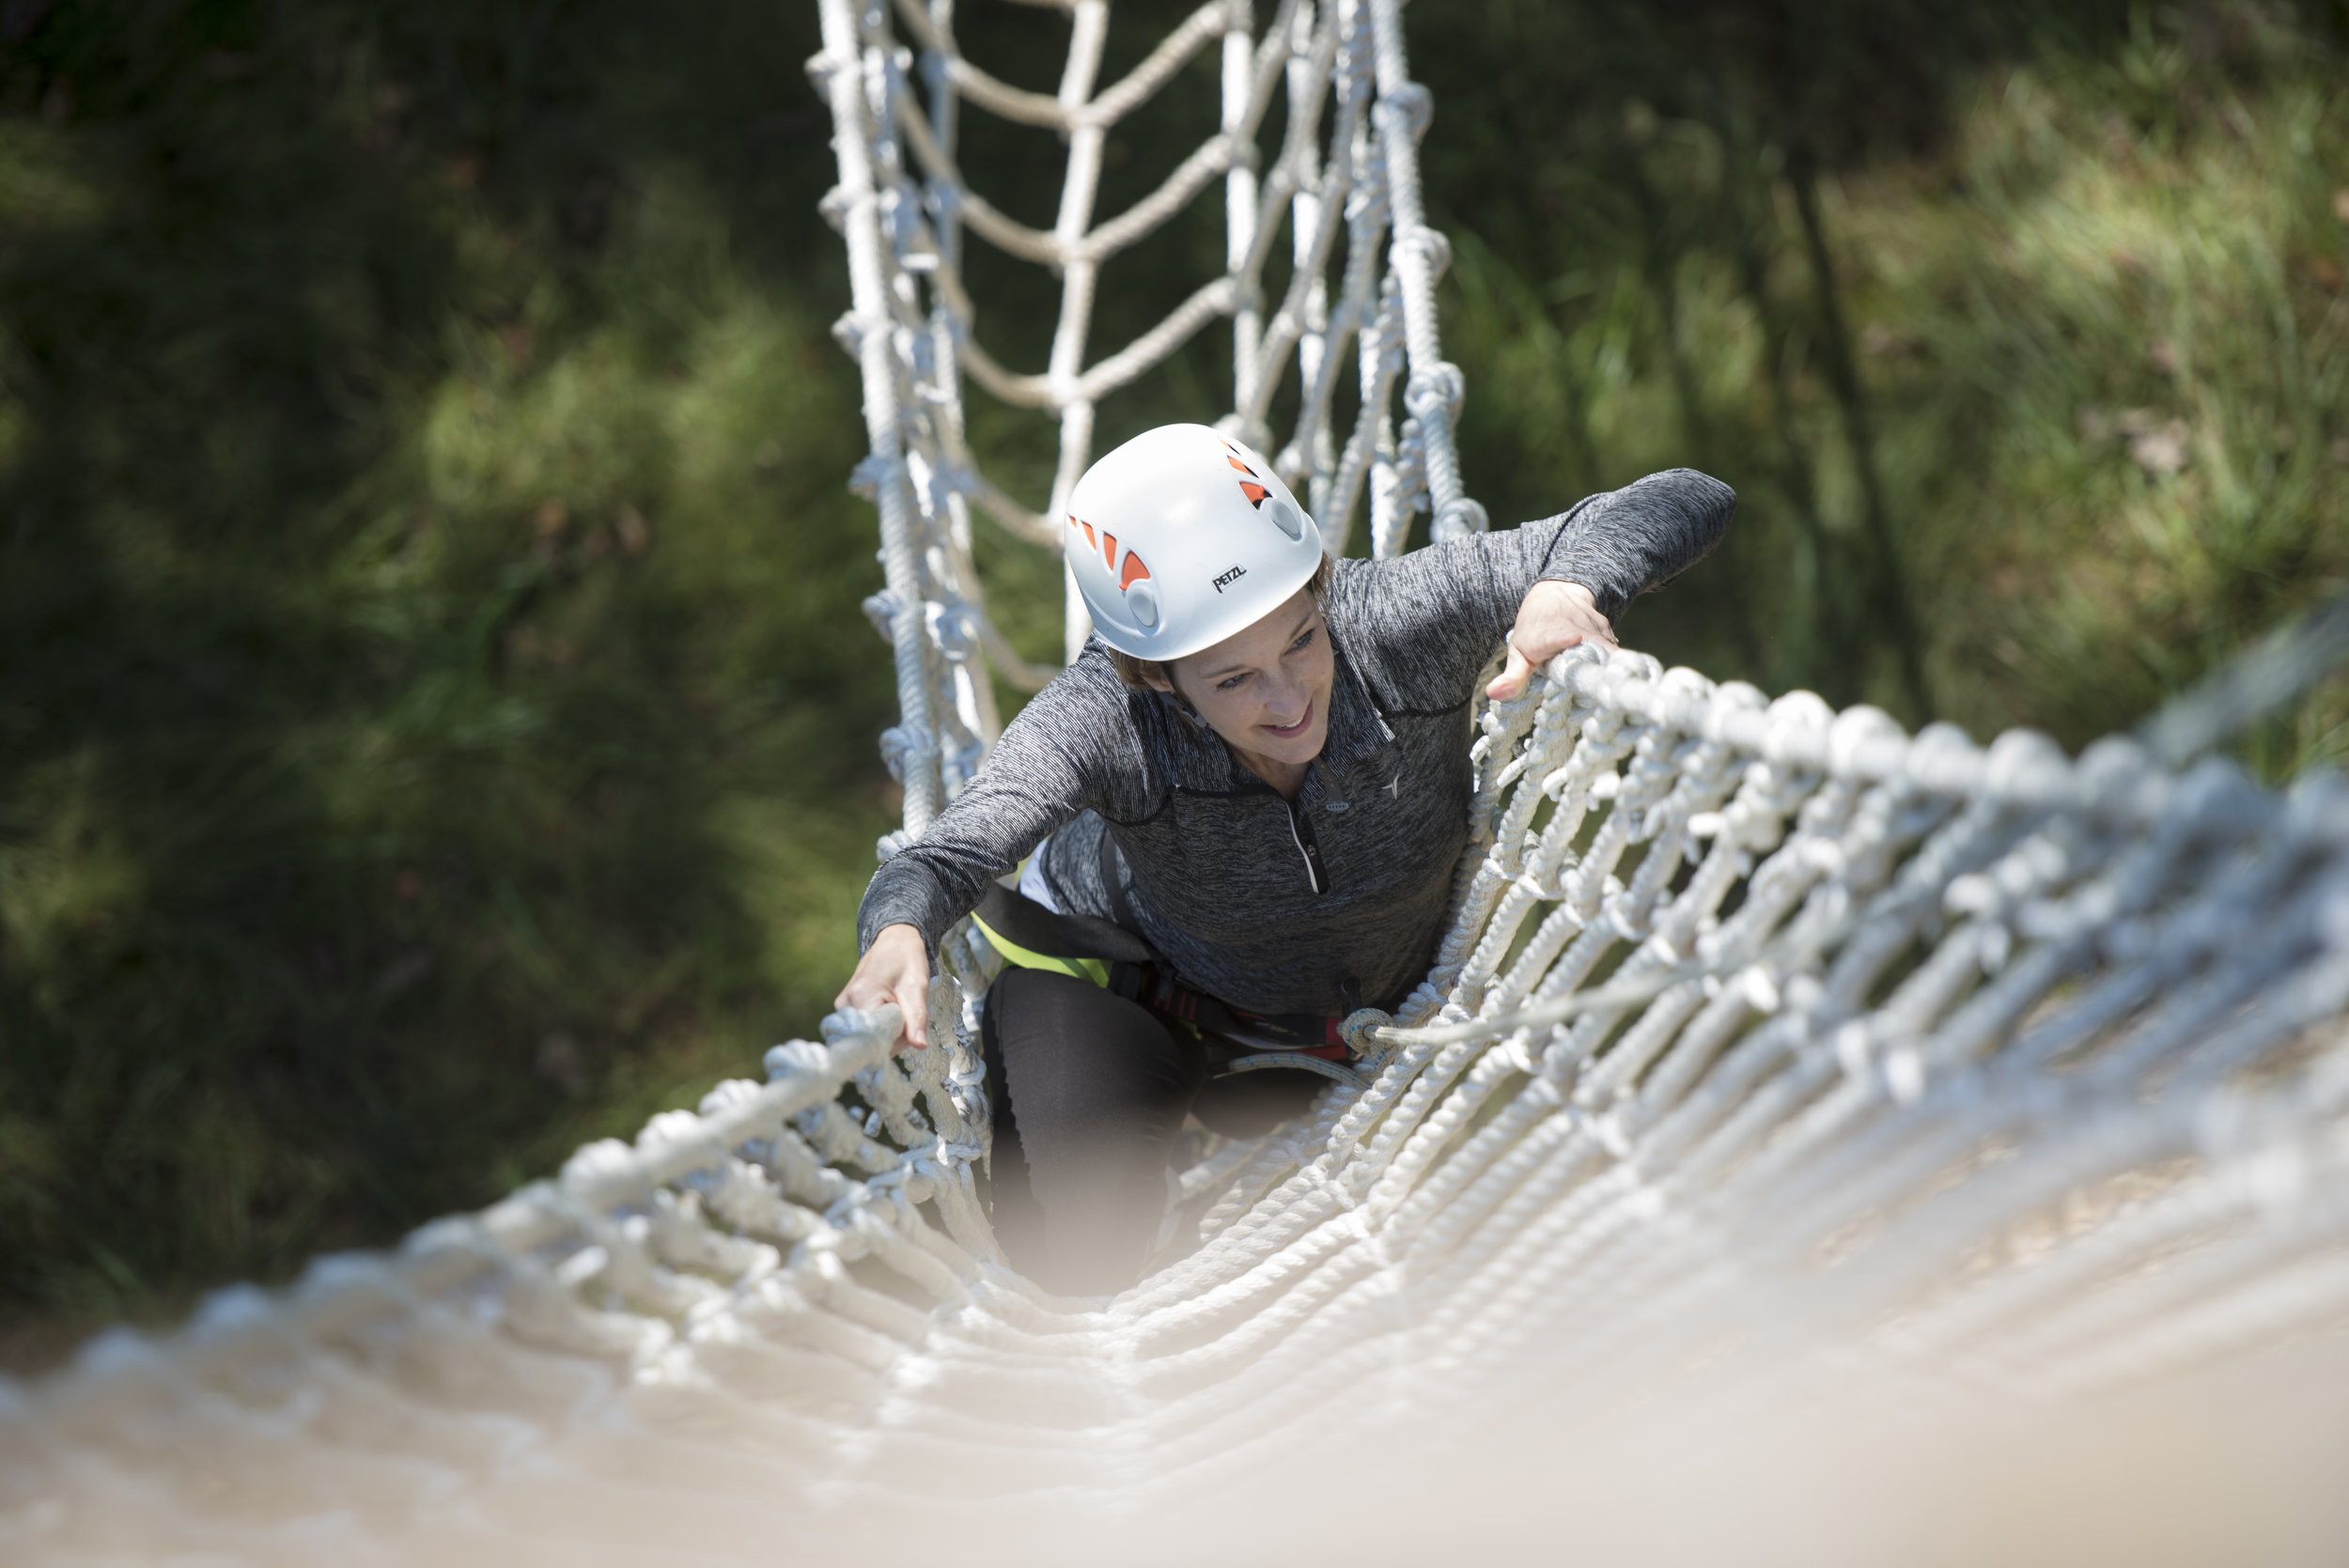 Pamela Gaboury climbs up the ziplining tower at the Challenge Course on Oct. 2, 2018 at The Ridges in Athens, Ohio.